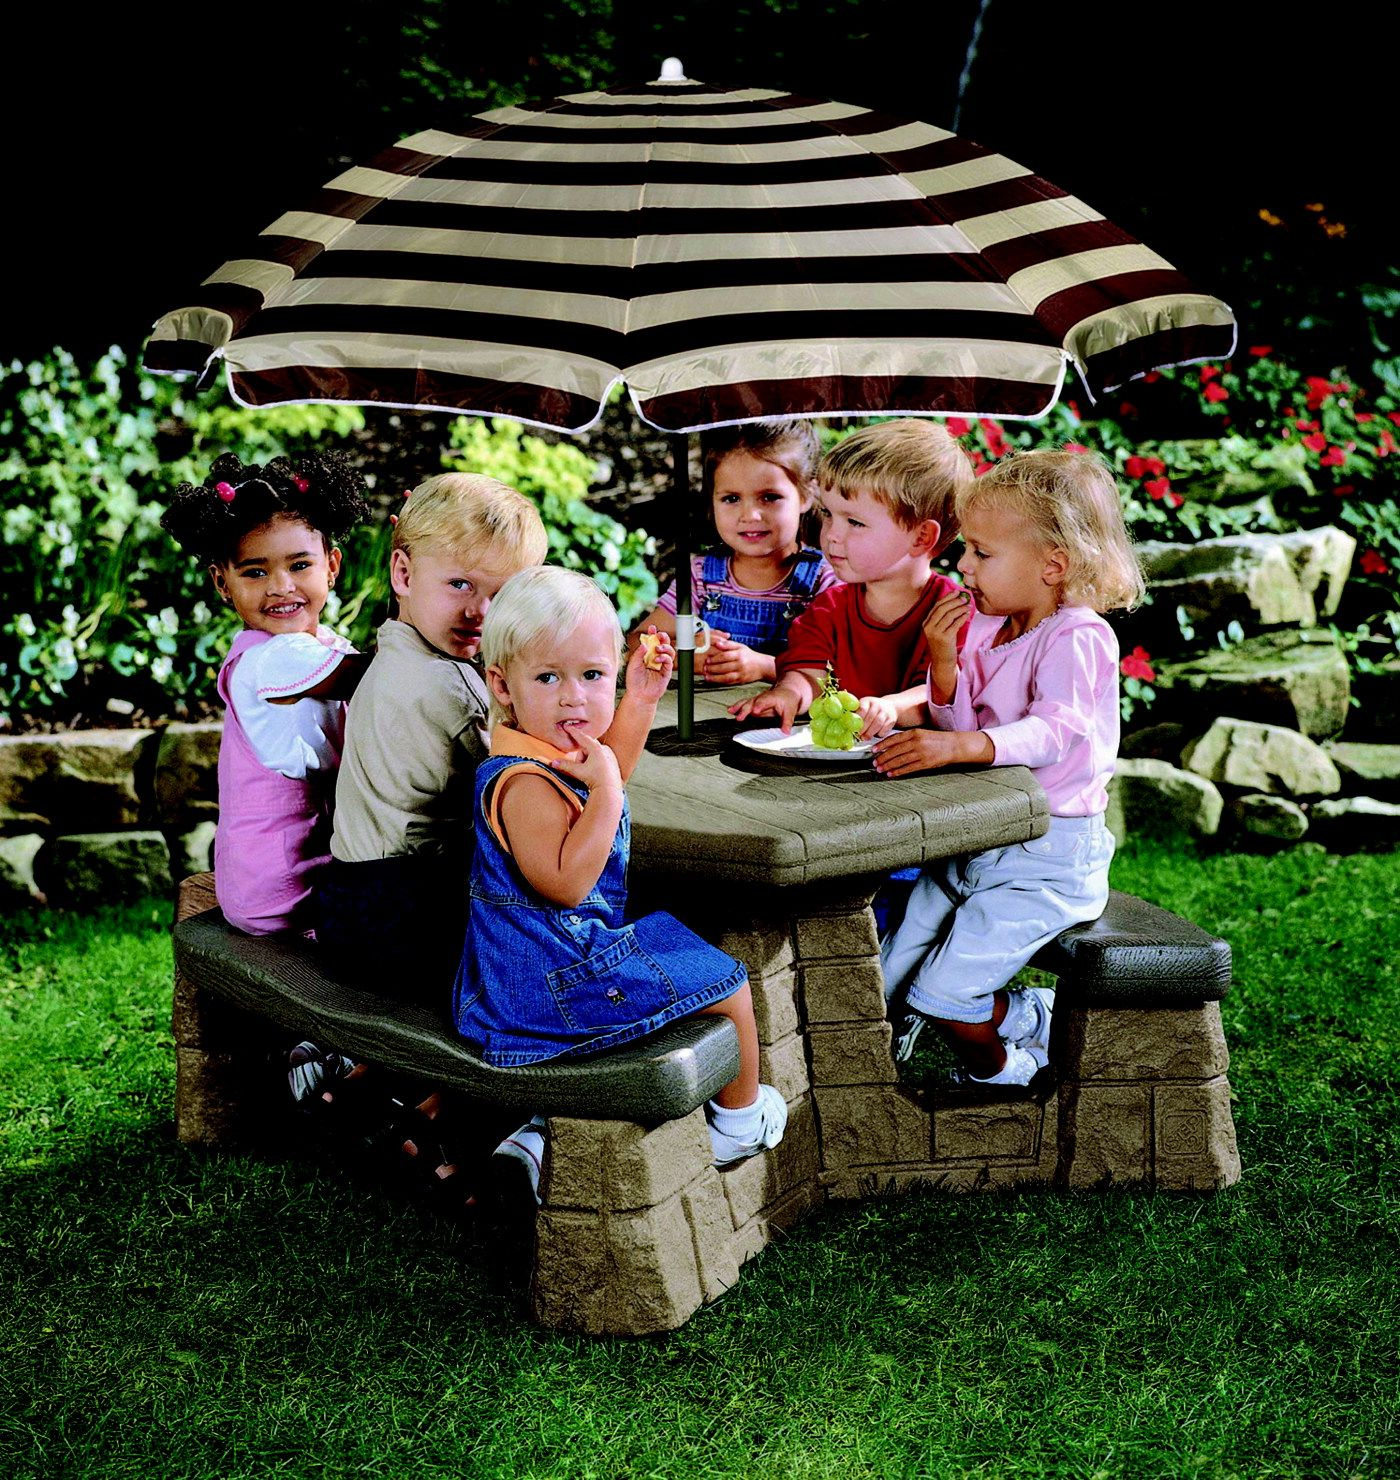 Step 2 Naturally Playful Picnic Table With Umbrella 72 X 43 X 40